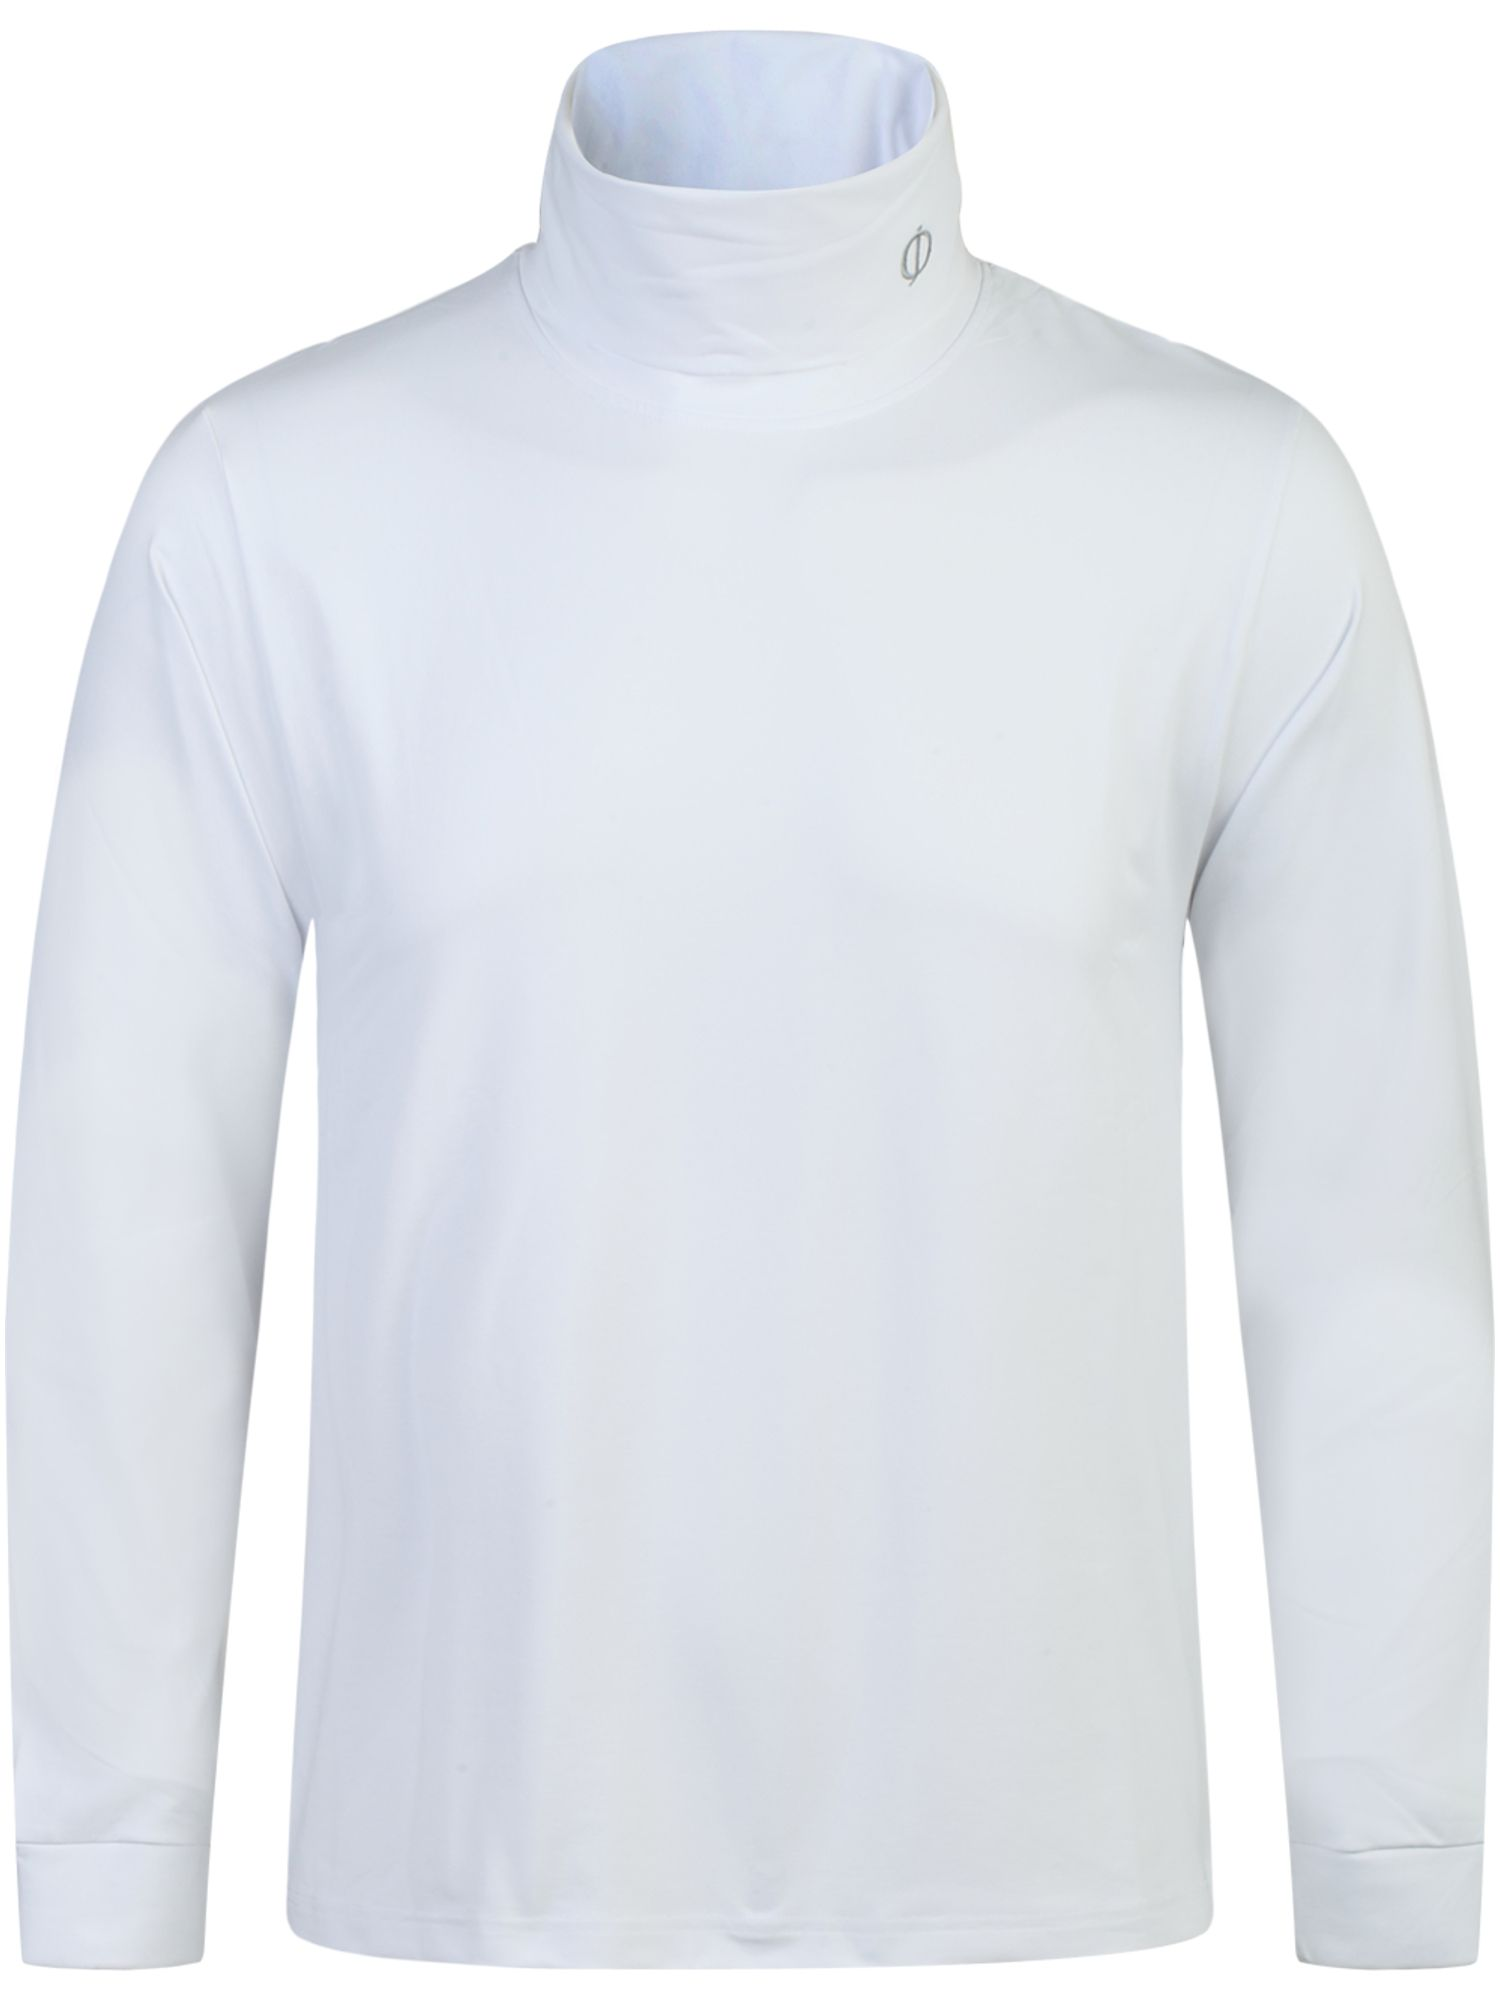 Men's Oscar Jacobson Birk Rollneck, White